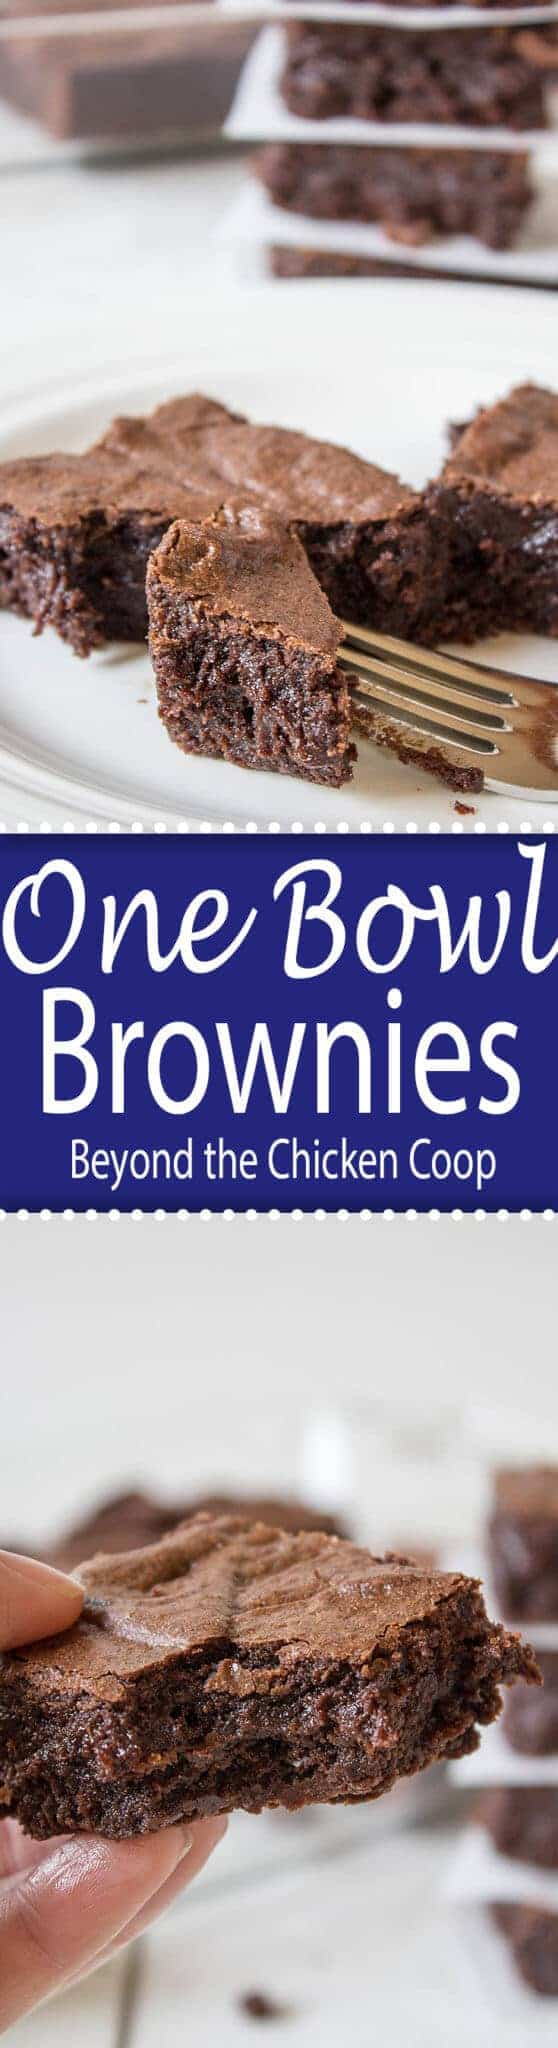 One Bowl Fudgy Brownies. Beyond the Chicken Coop